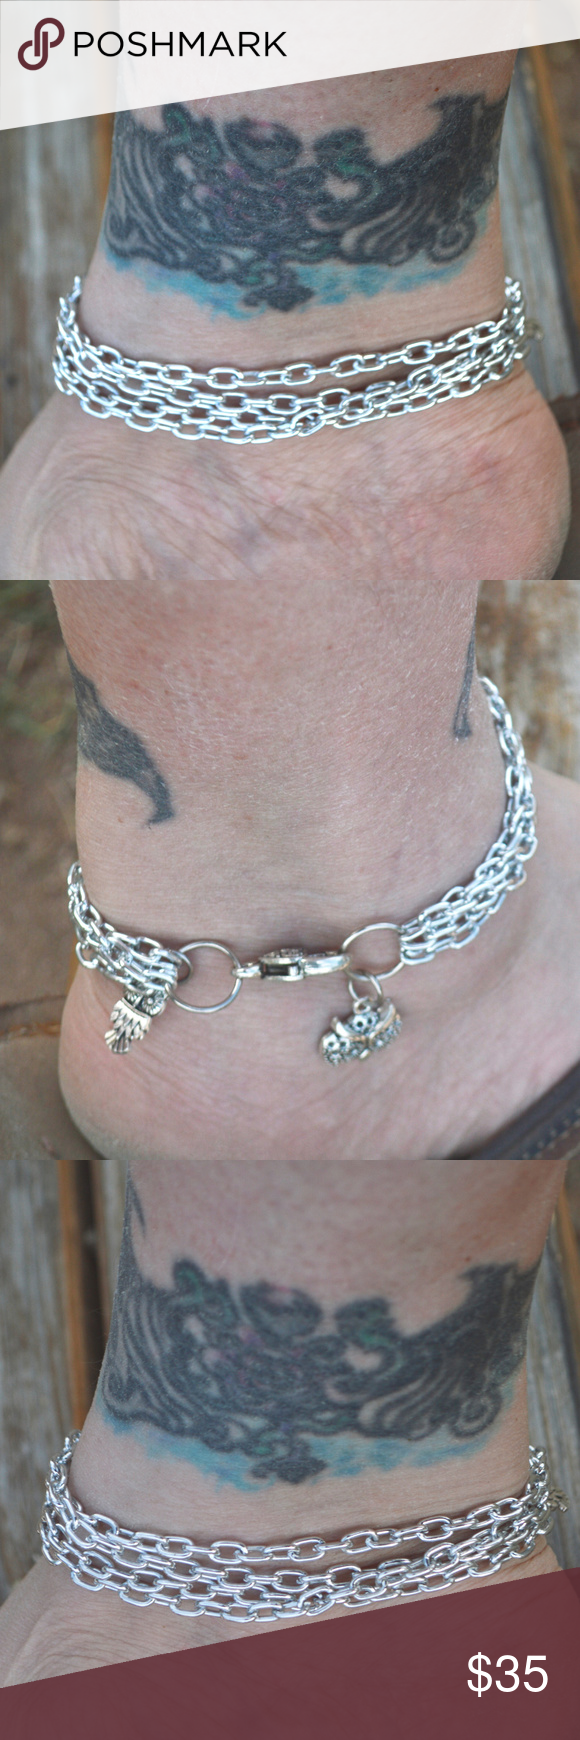 Bracelet Silver Chain Strands Anklet Charm Thank you for looking at this original design, handmade ankle bracelet. Its silver aluminum, lightweight, you will barely feel it  10.5 inches long  ,  you can request it smaller or bigger, please just ask as we make this to order 2 owl charms,  big heart clasp boho, steampunk, rocker, bike...